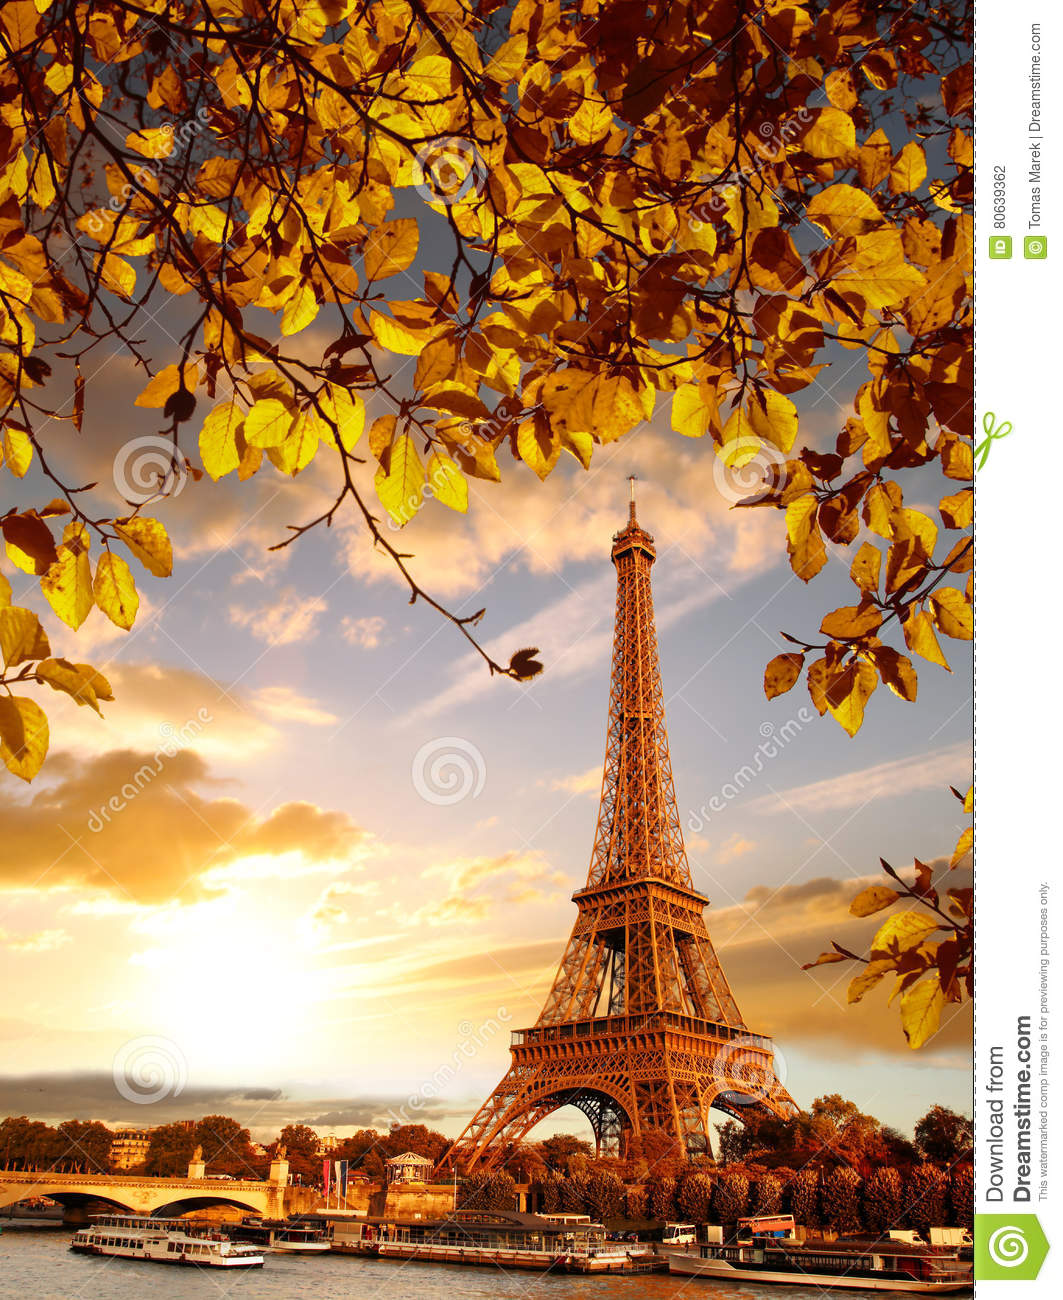 Who Designed The Eiffel Tower Famous Eiffel Tower In Autumn Stock Image Cartoondealer